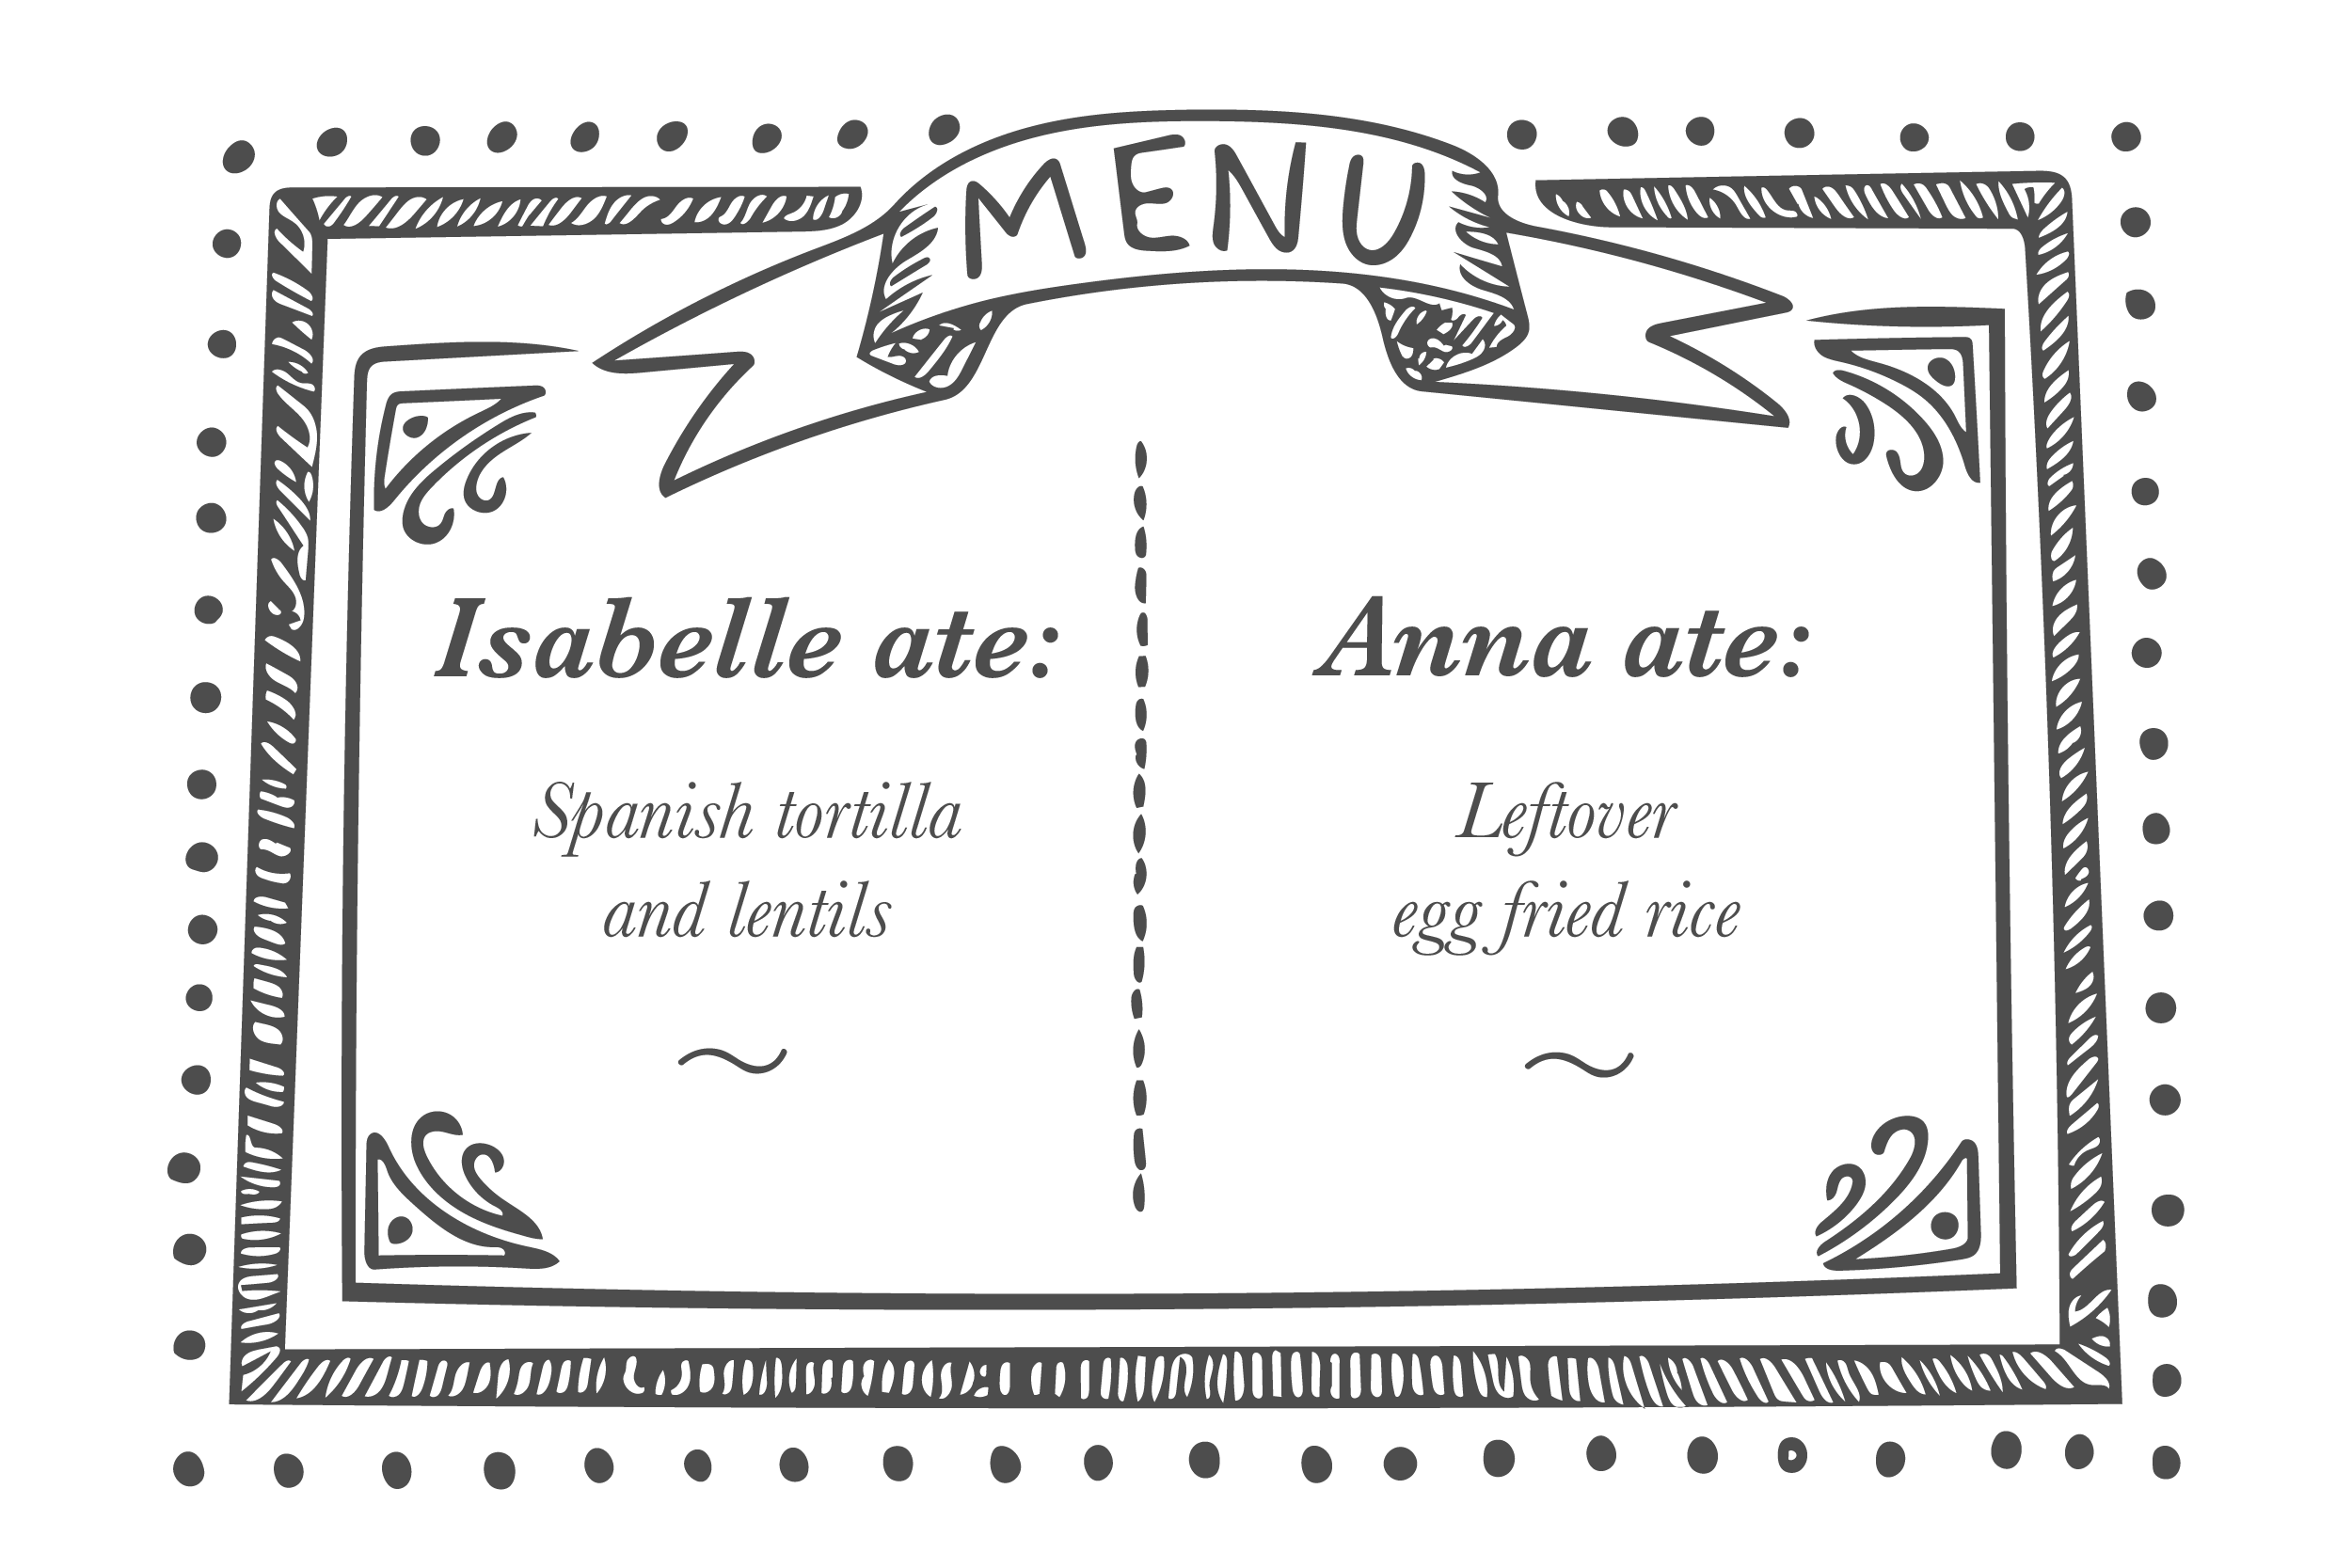 Lunch menu - Isabelle Irani